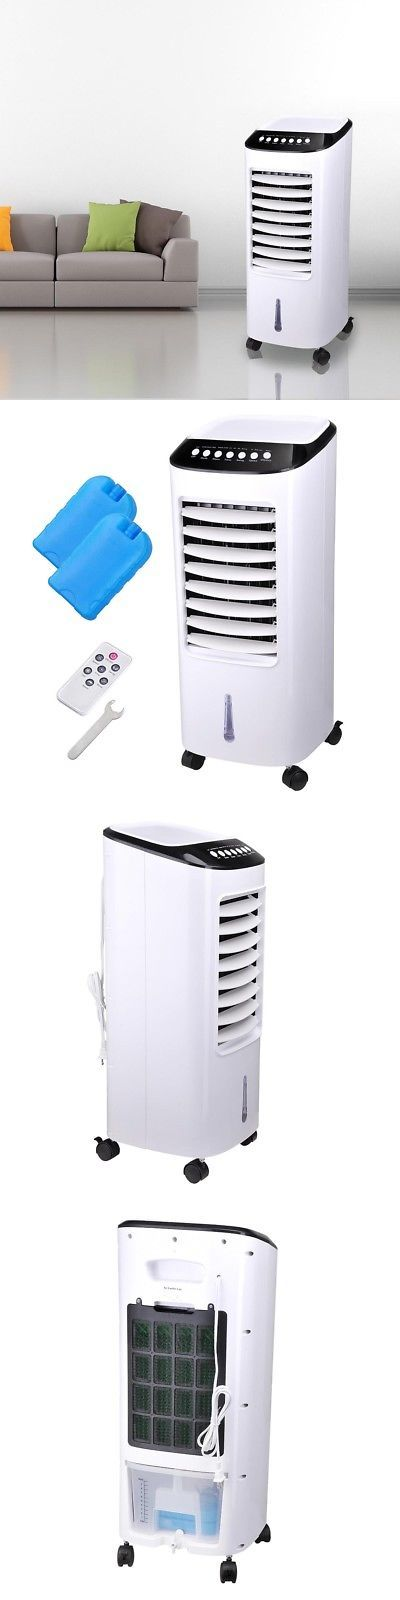 Portable Fans 20612: Portable Evaporative Air Cooler Fan Indoor Cooling Humidifier W Remote Control -> BUY IT NOW ONLY: $79.9 on eBay!